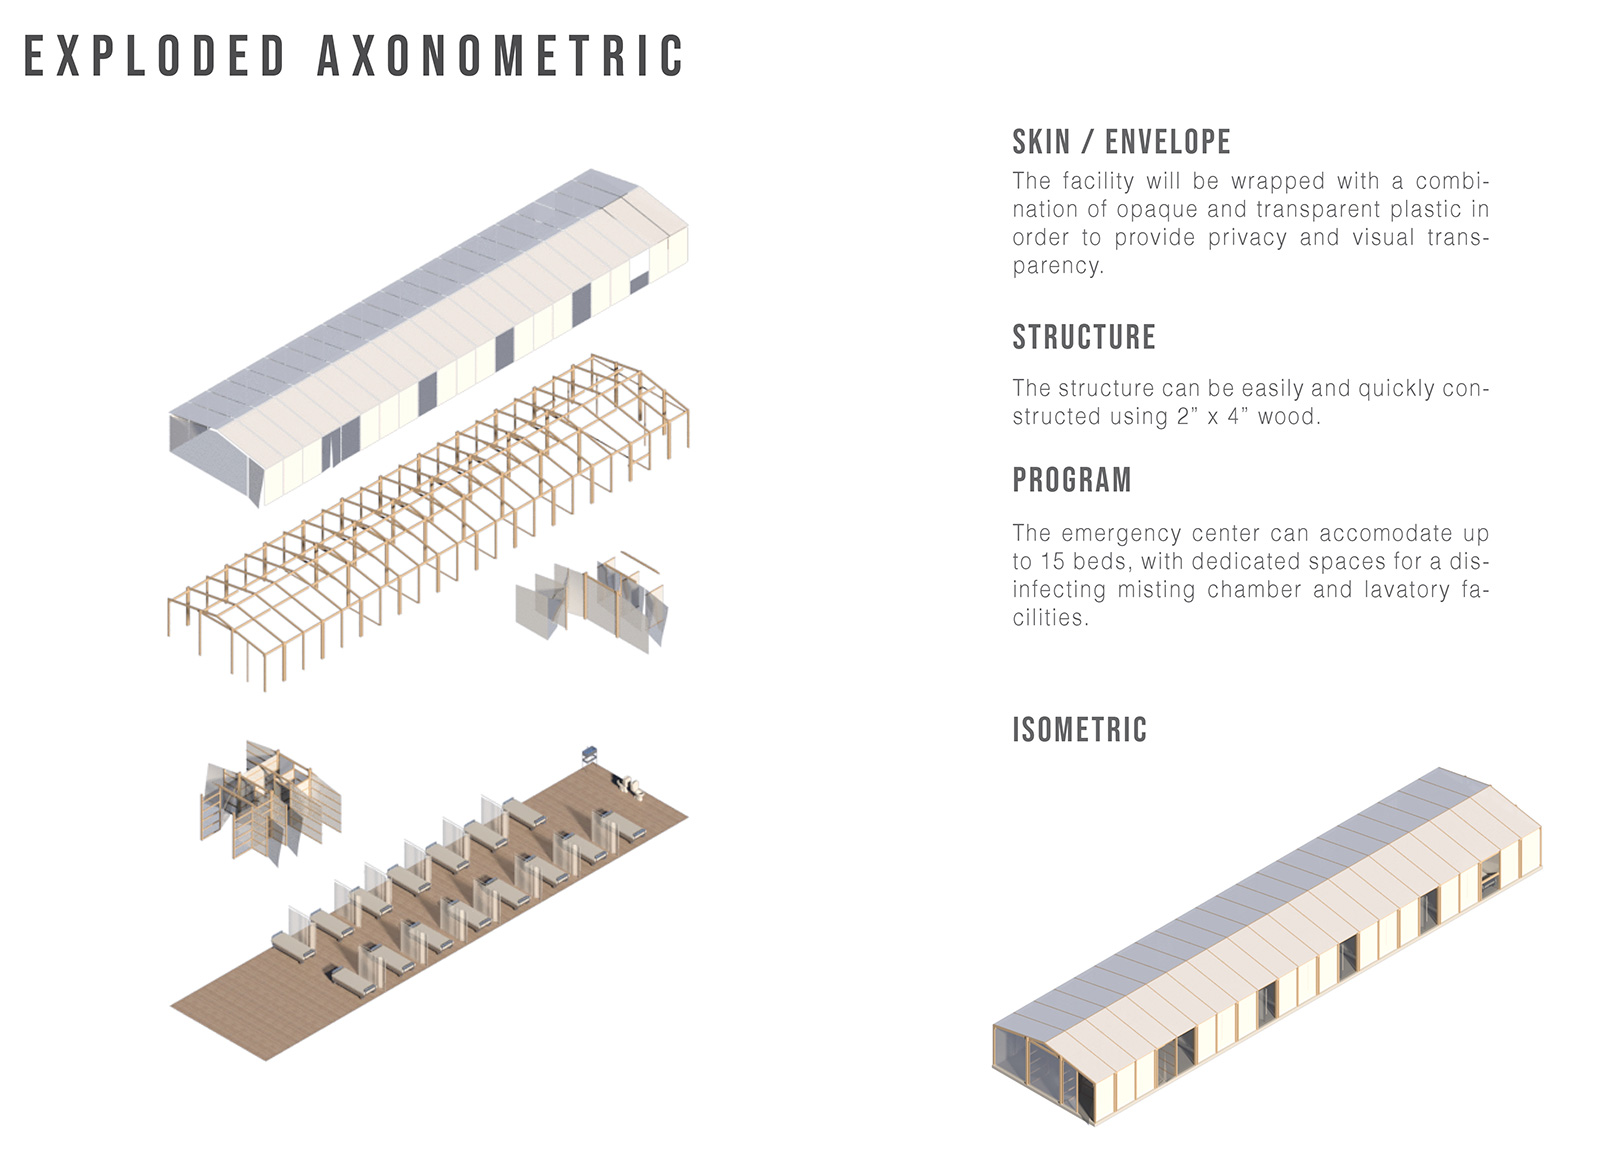 The facility is being made of basic materials such as wood pallets, wood frames, insulation foam, and polyethylene sheets | Emergency Quarantine Facility | WTA Architecture + Design Studio | STIRworld